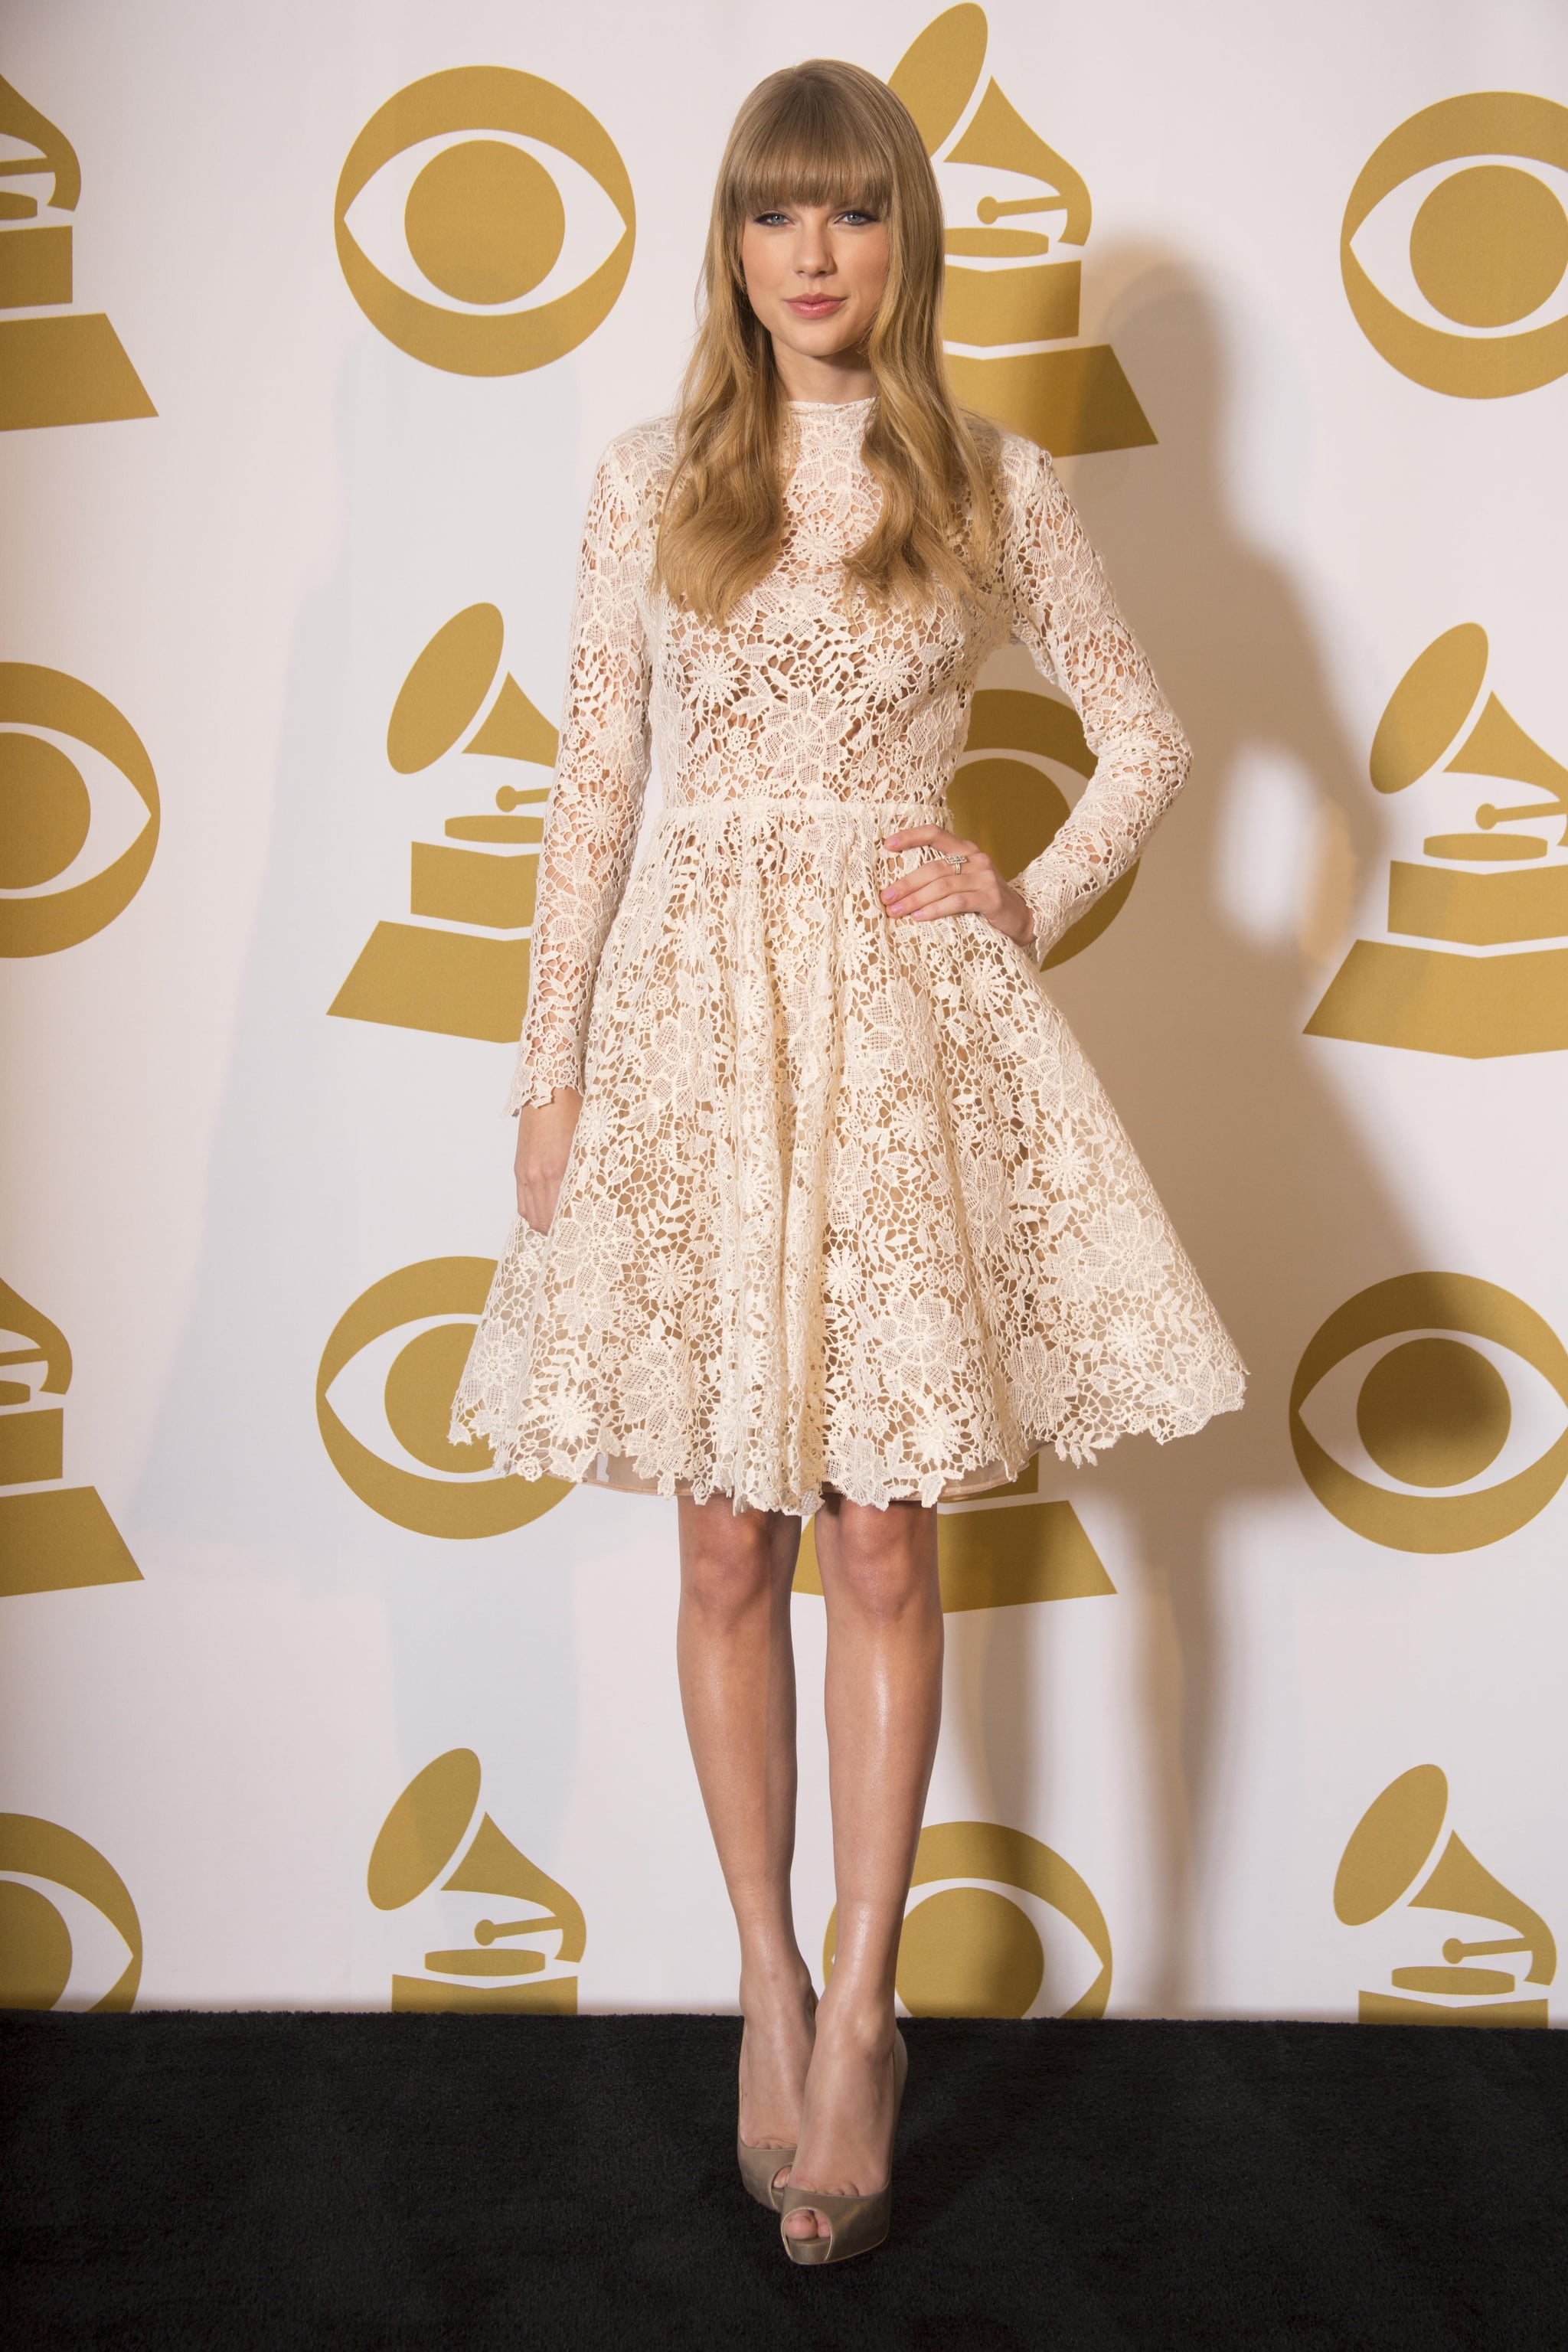 Taylor Swift wore a lace dress at the Grammy Nominations concert in Nashville.